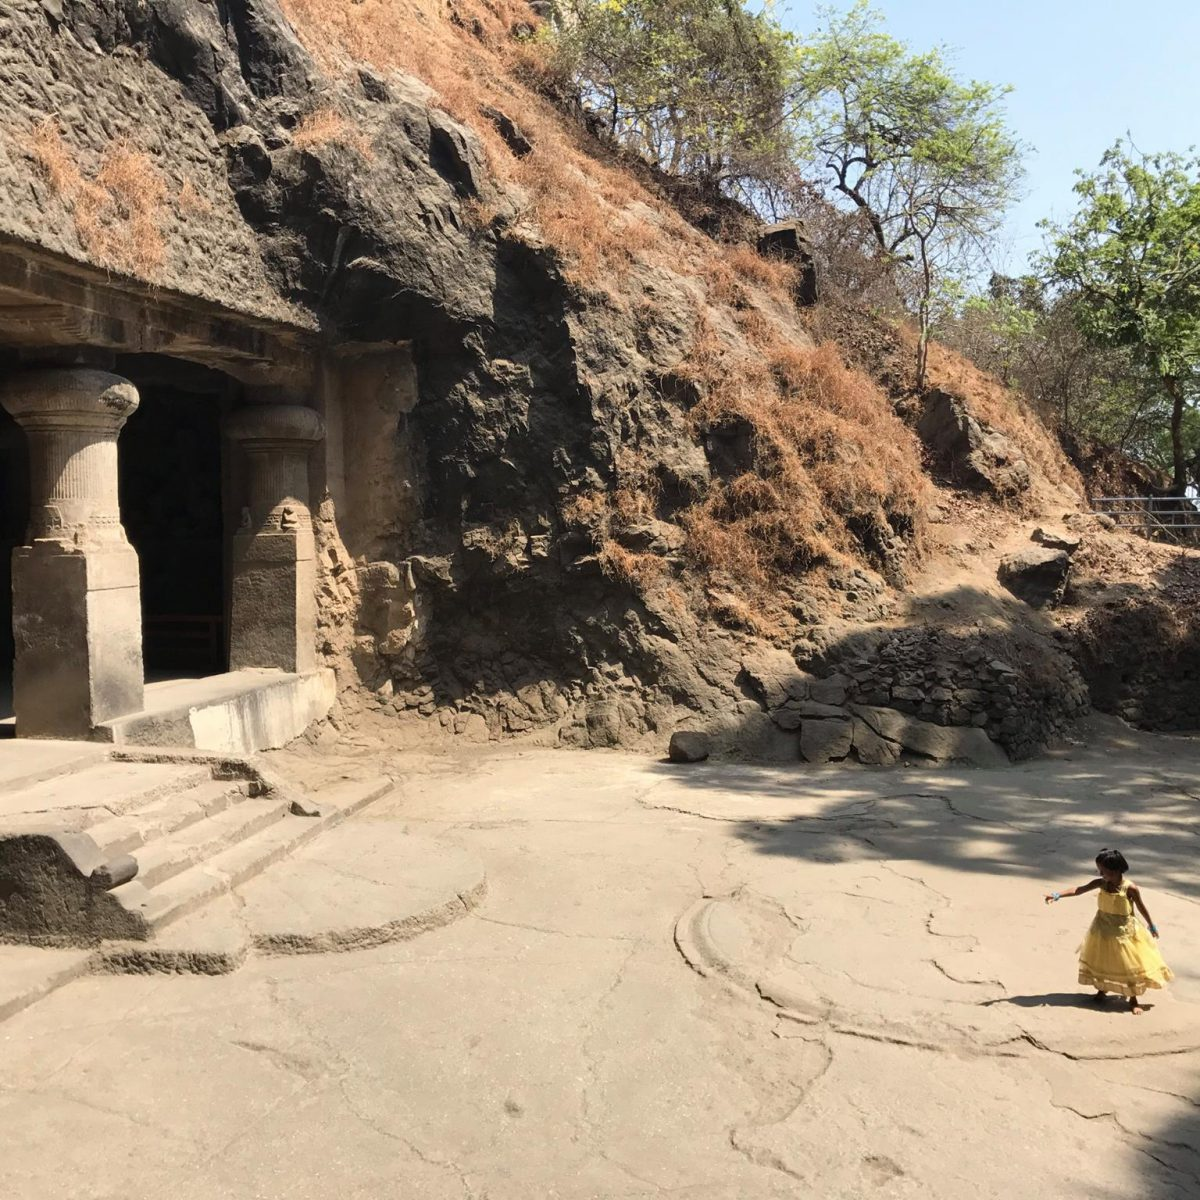 A girl plays at a temple carved out of rock